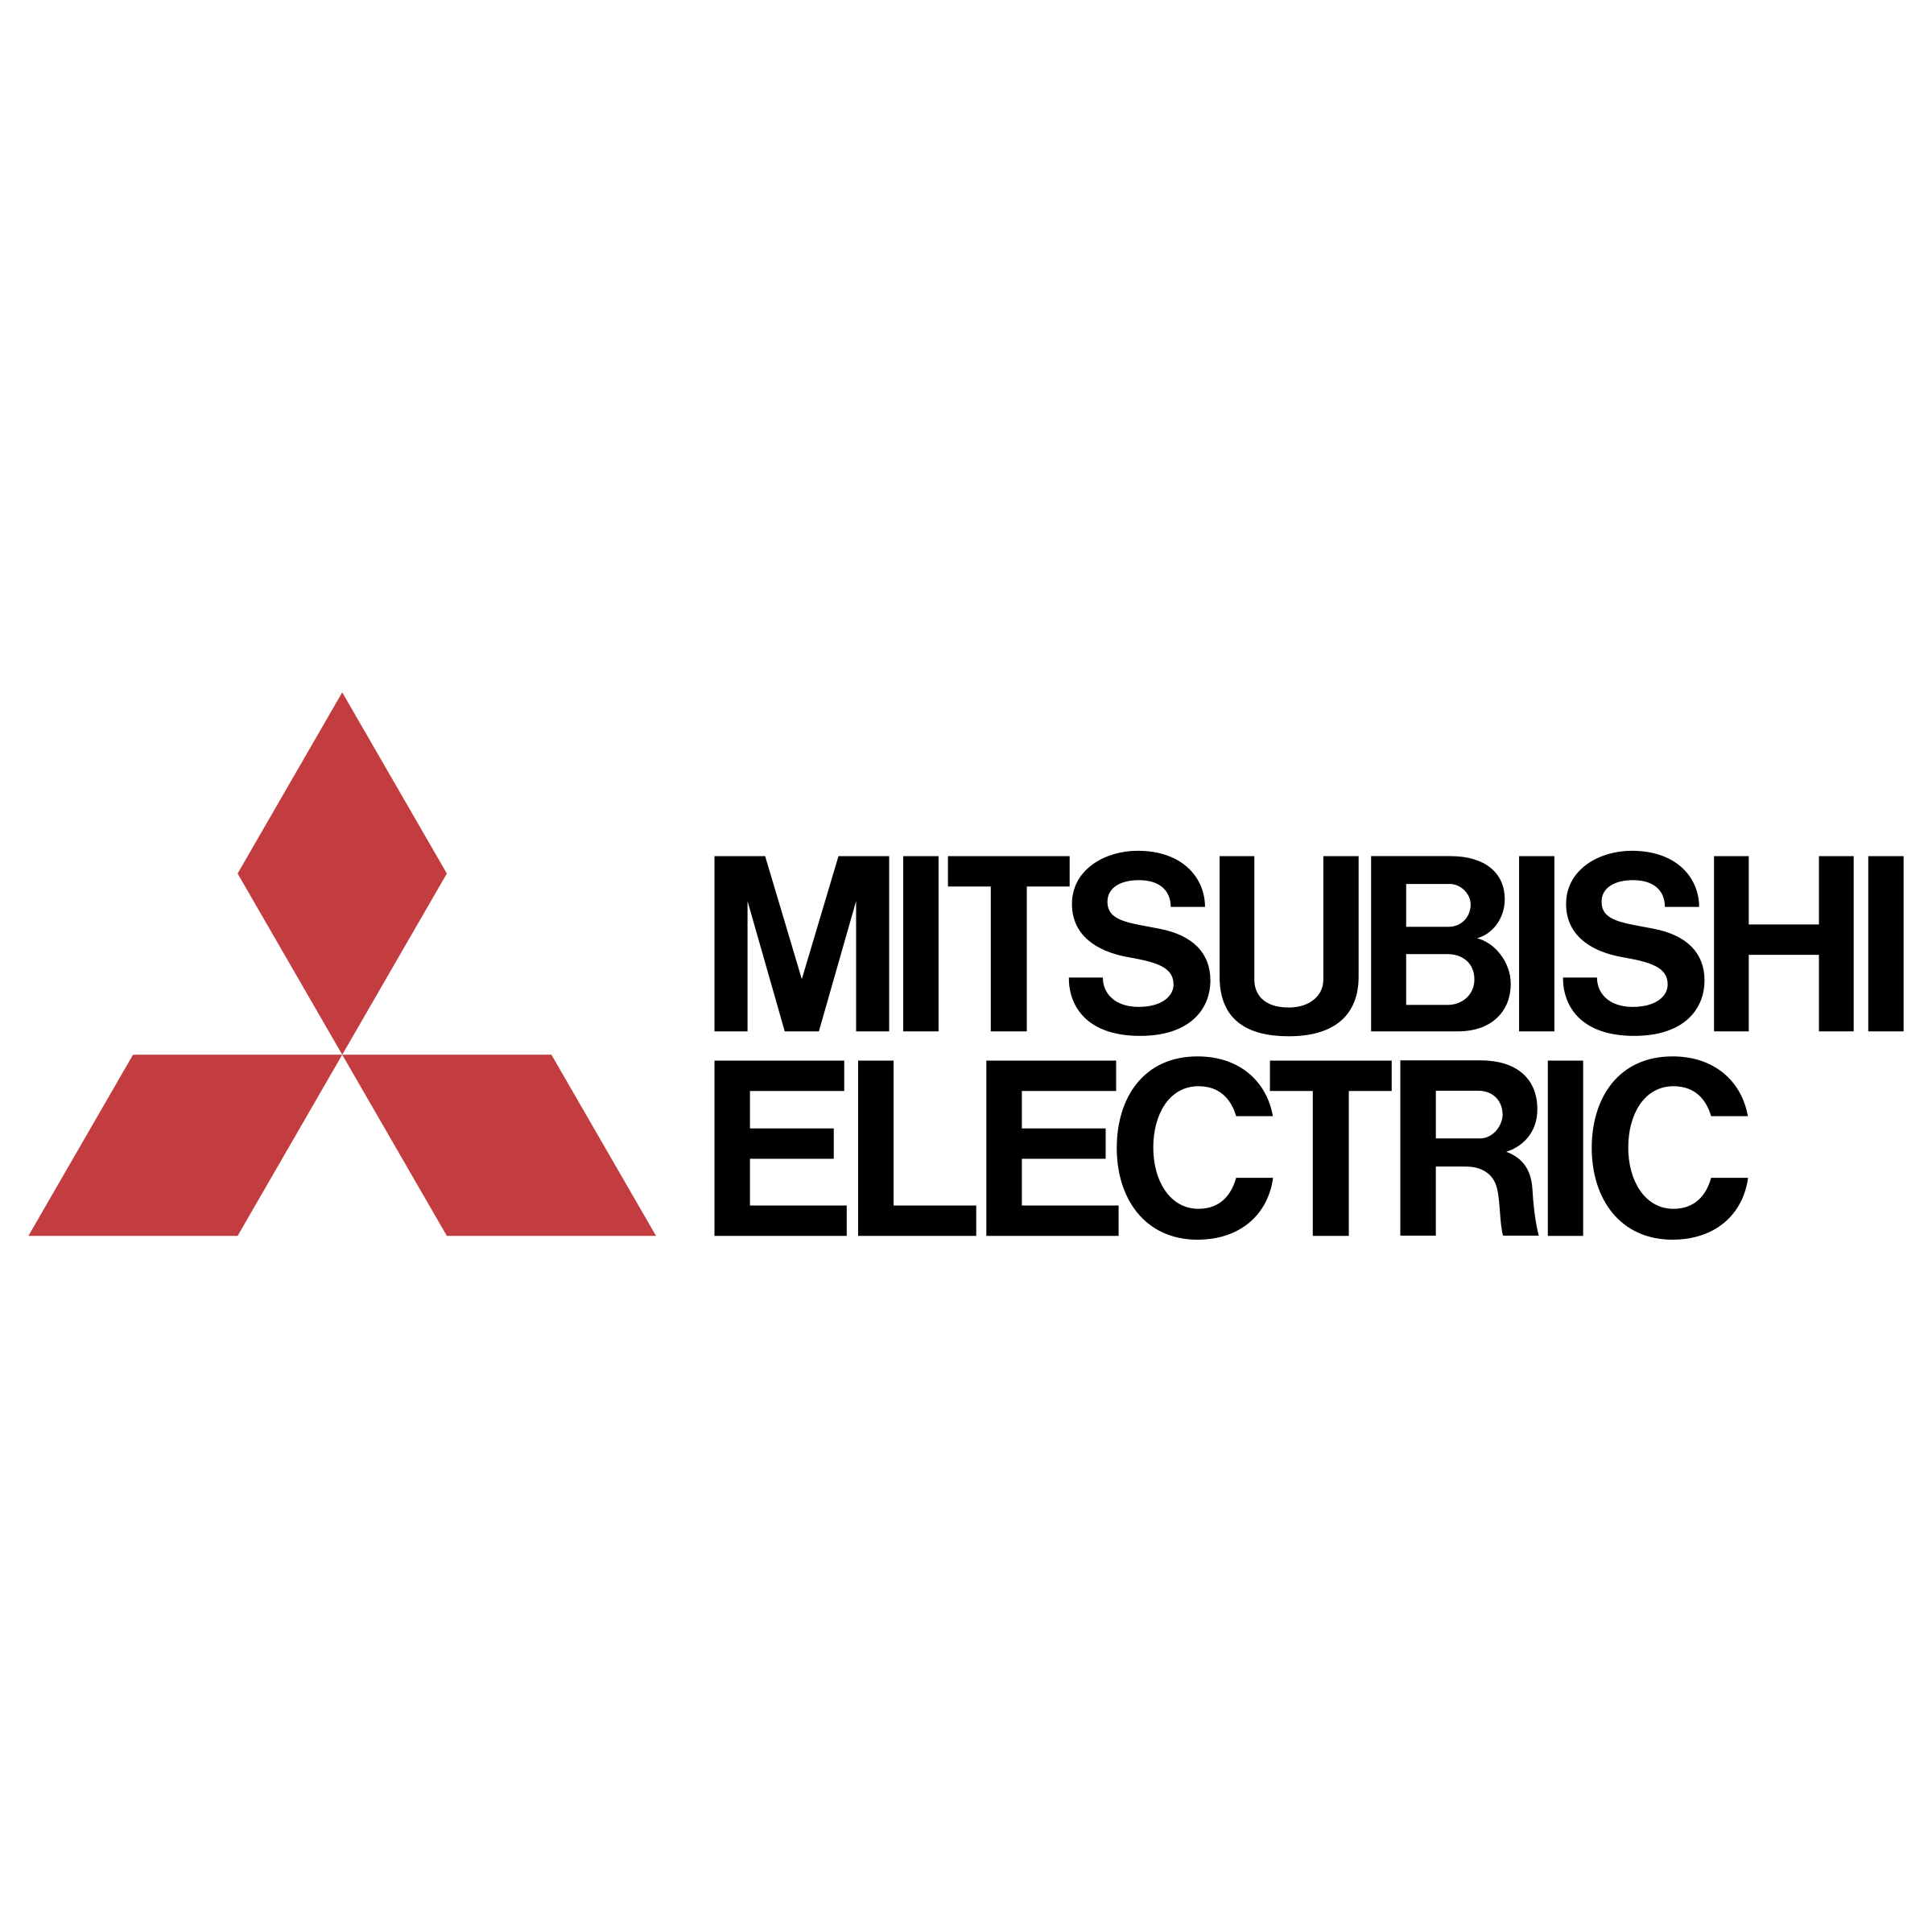 mitsubishi-electric-logo-png-transparent